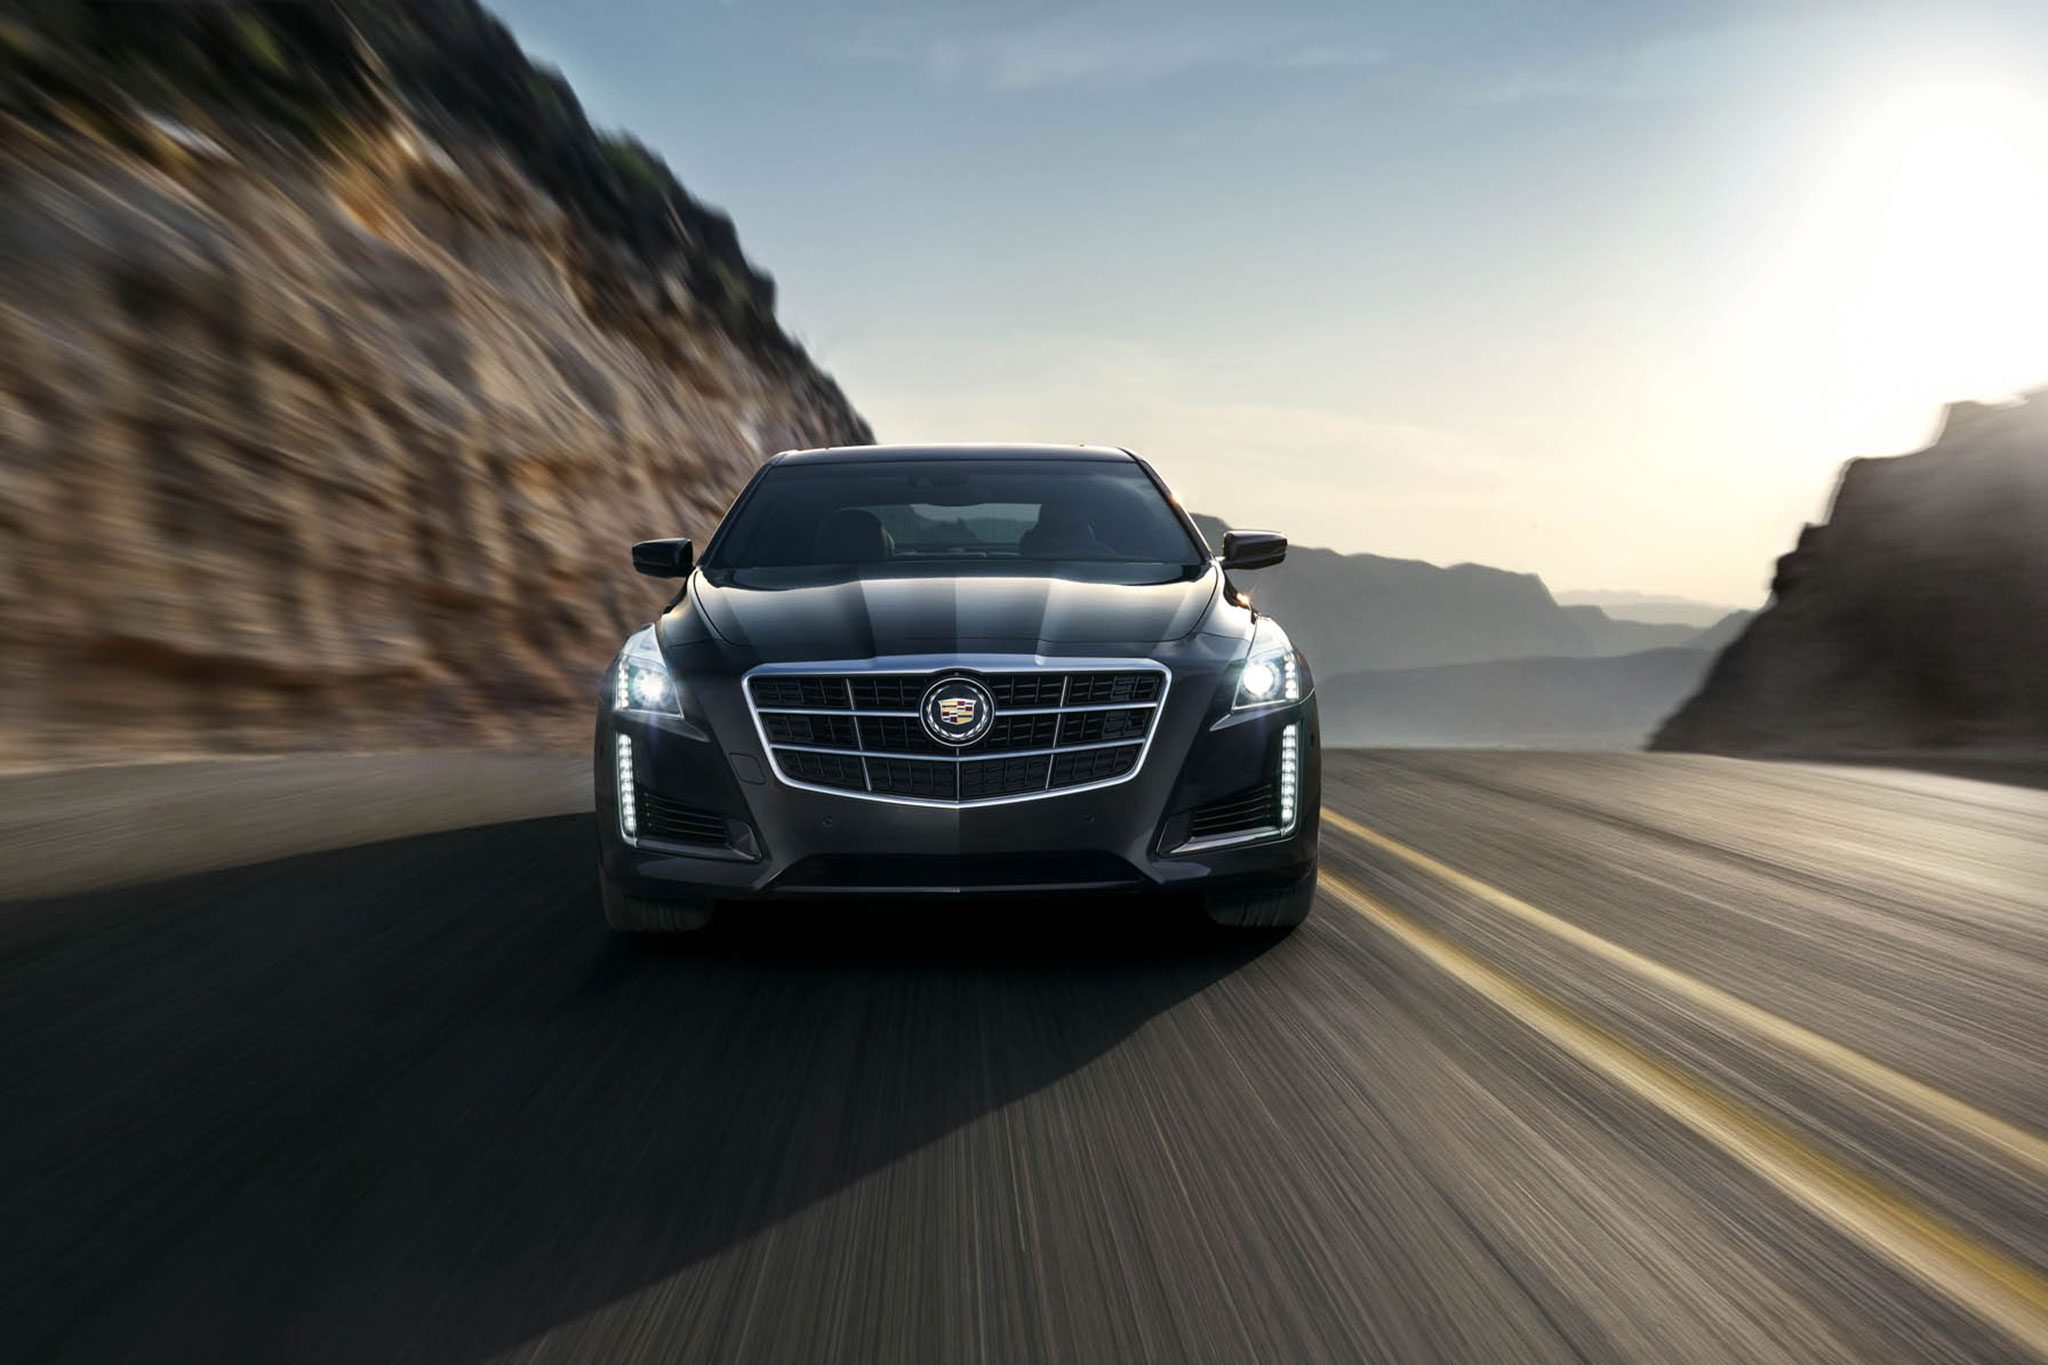 2014 Cadillac CTS Front View In Motion1